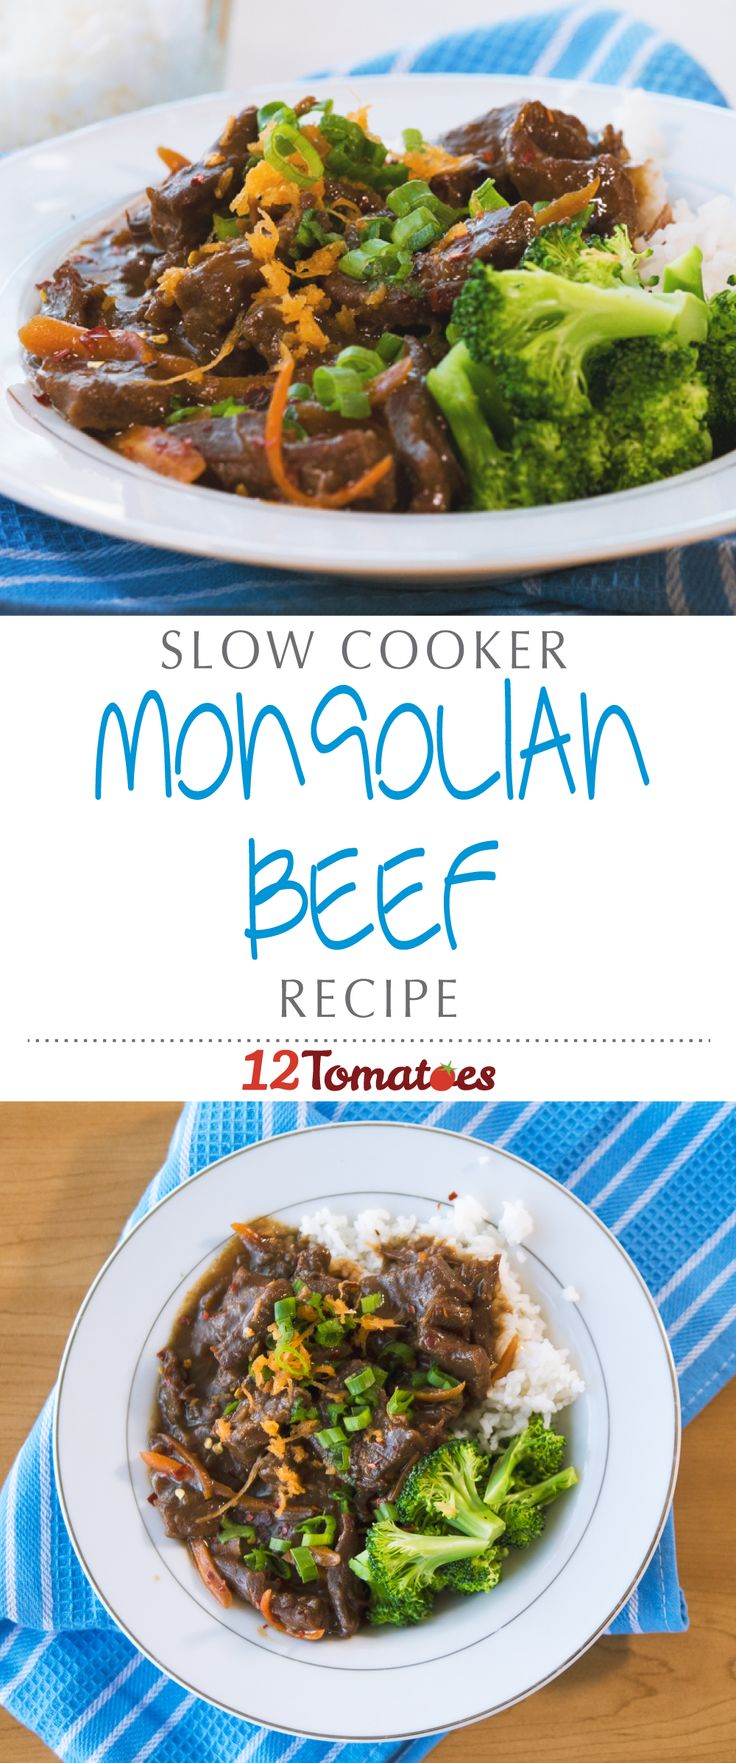 Slow Cooker Mongolian Beef | The beef comes out perfectly cooked, and the brown sauce gives any Chinese restaurant a run for their money!